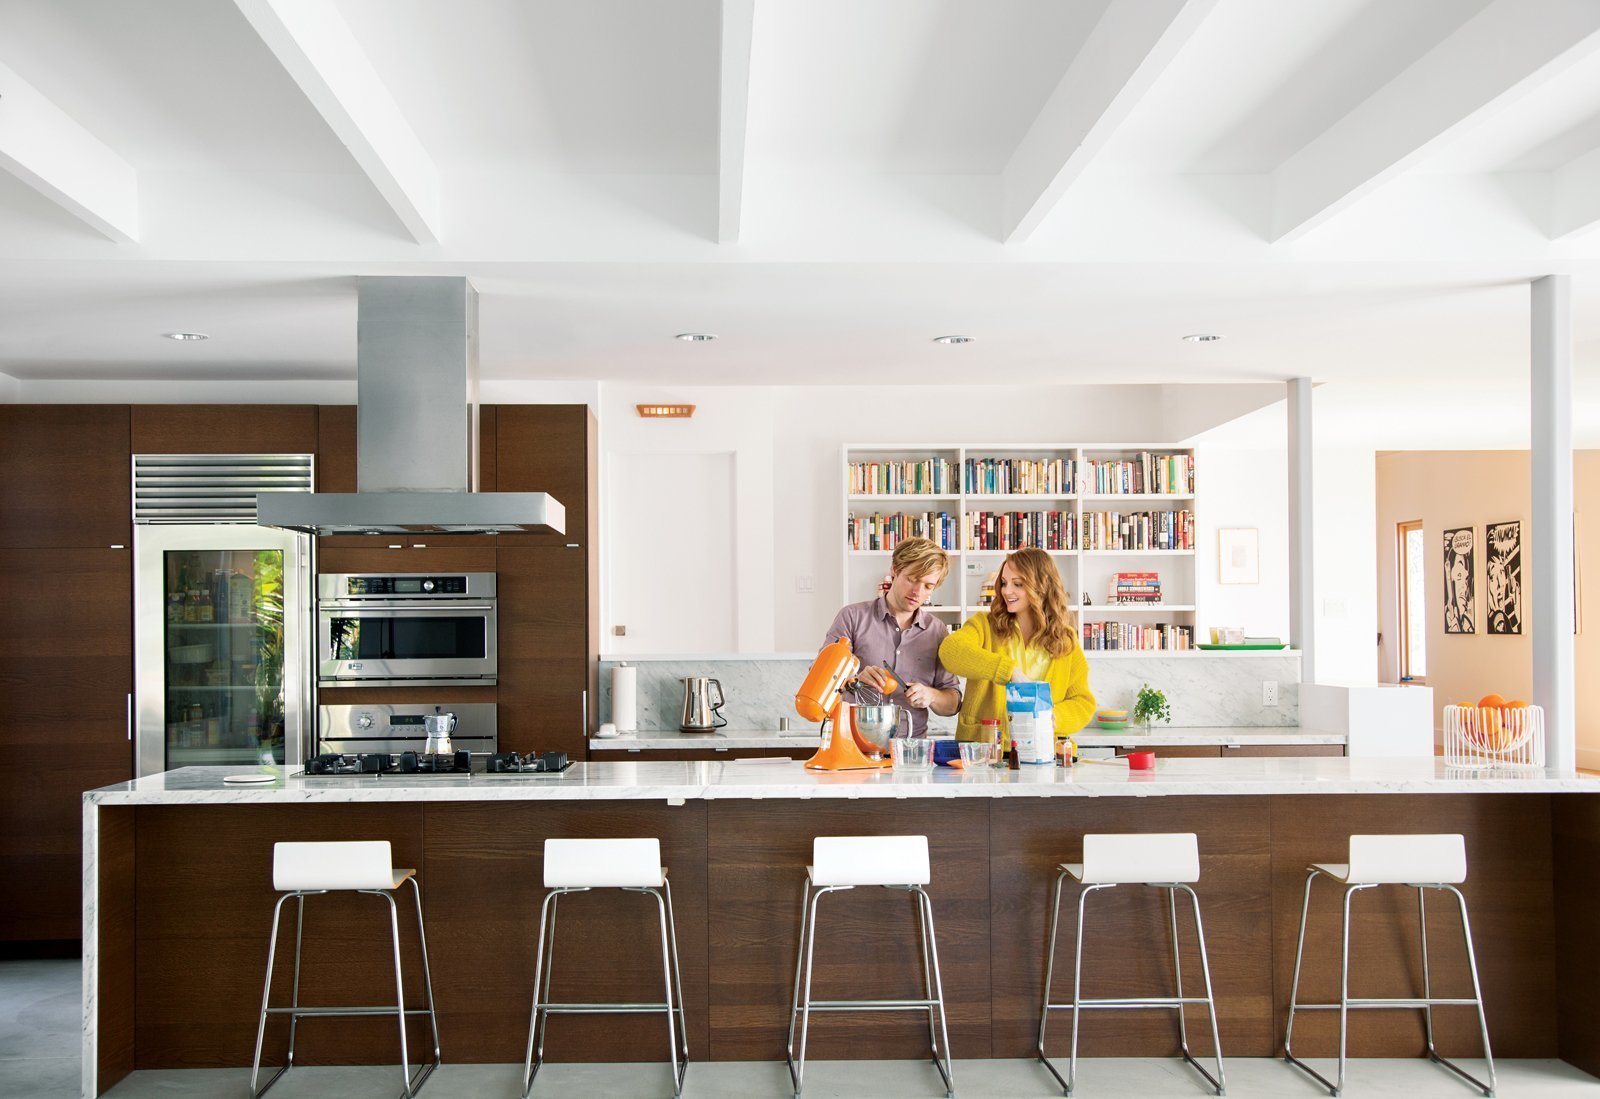 7 Design Tips For a Chef-Worthy Kitchen - Dwell